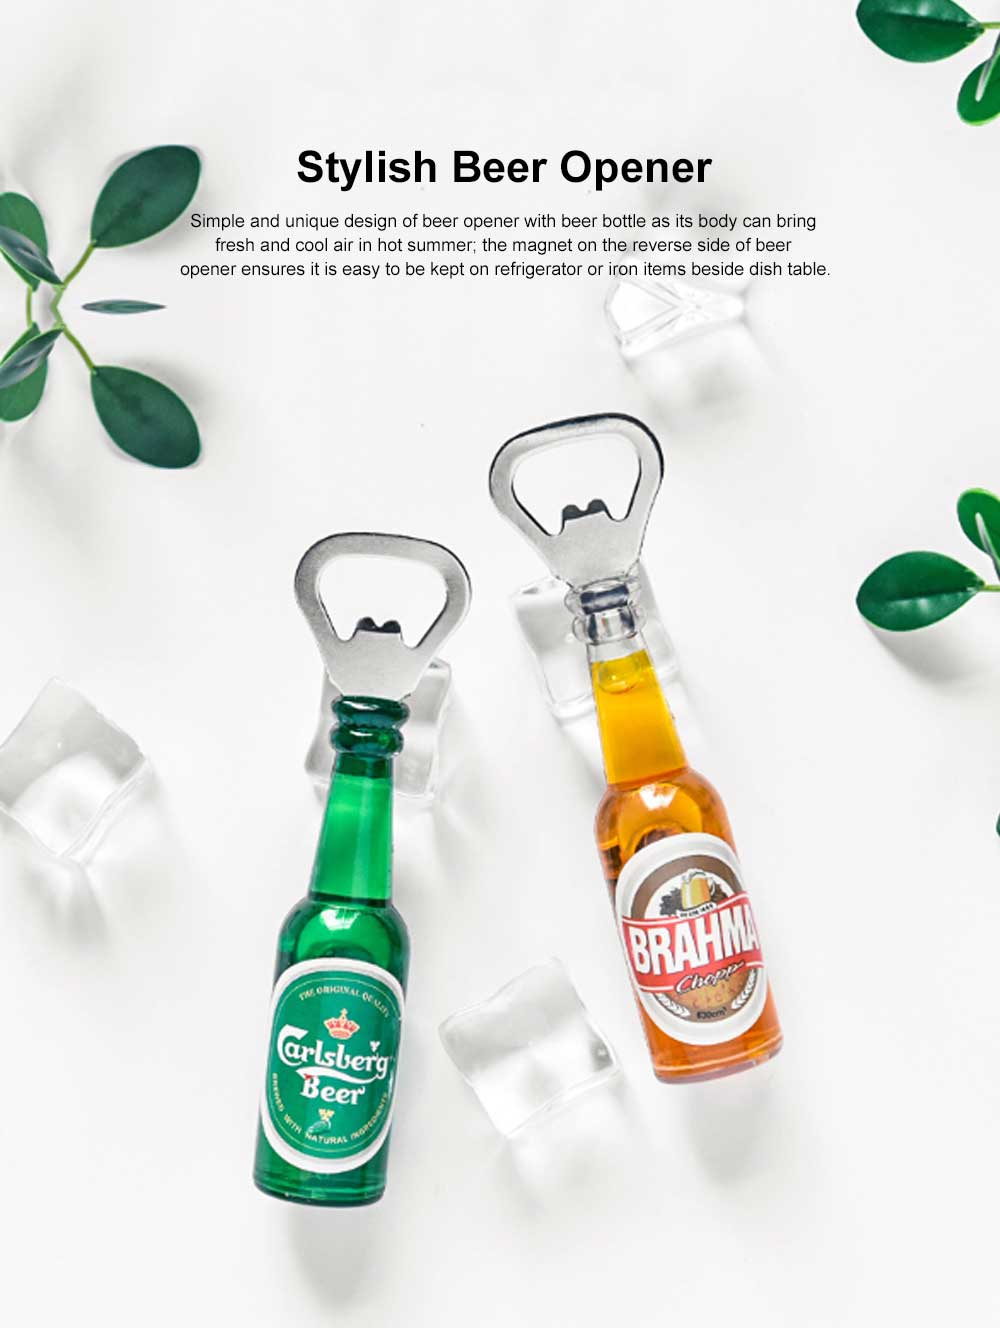 Magnetic Beer Opener with Multiple Functions Stylish Beer Opener Household Accessories American Style Beer Opener 0